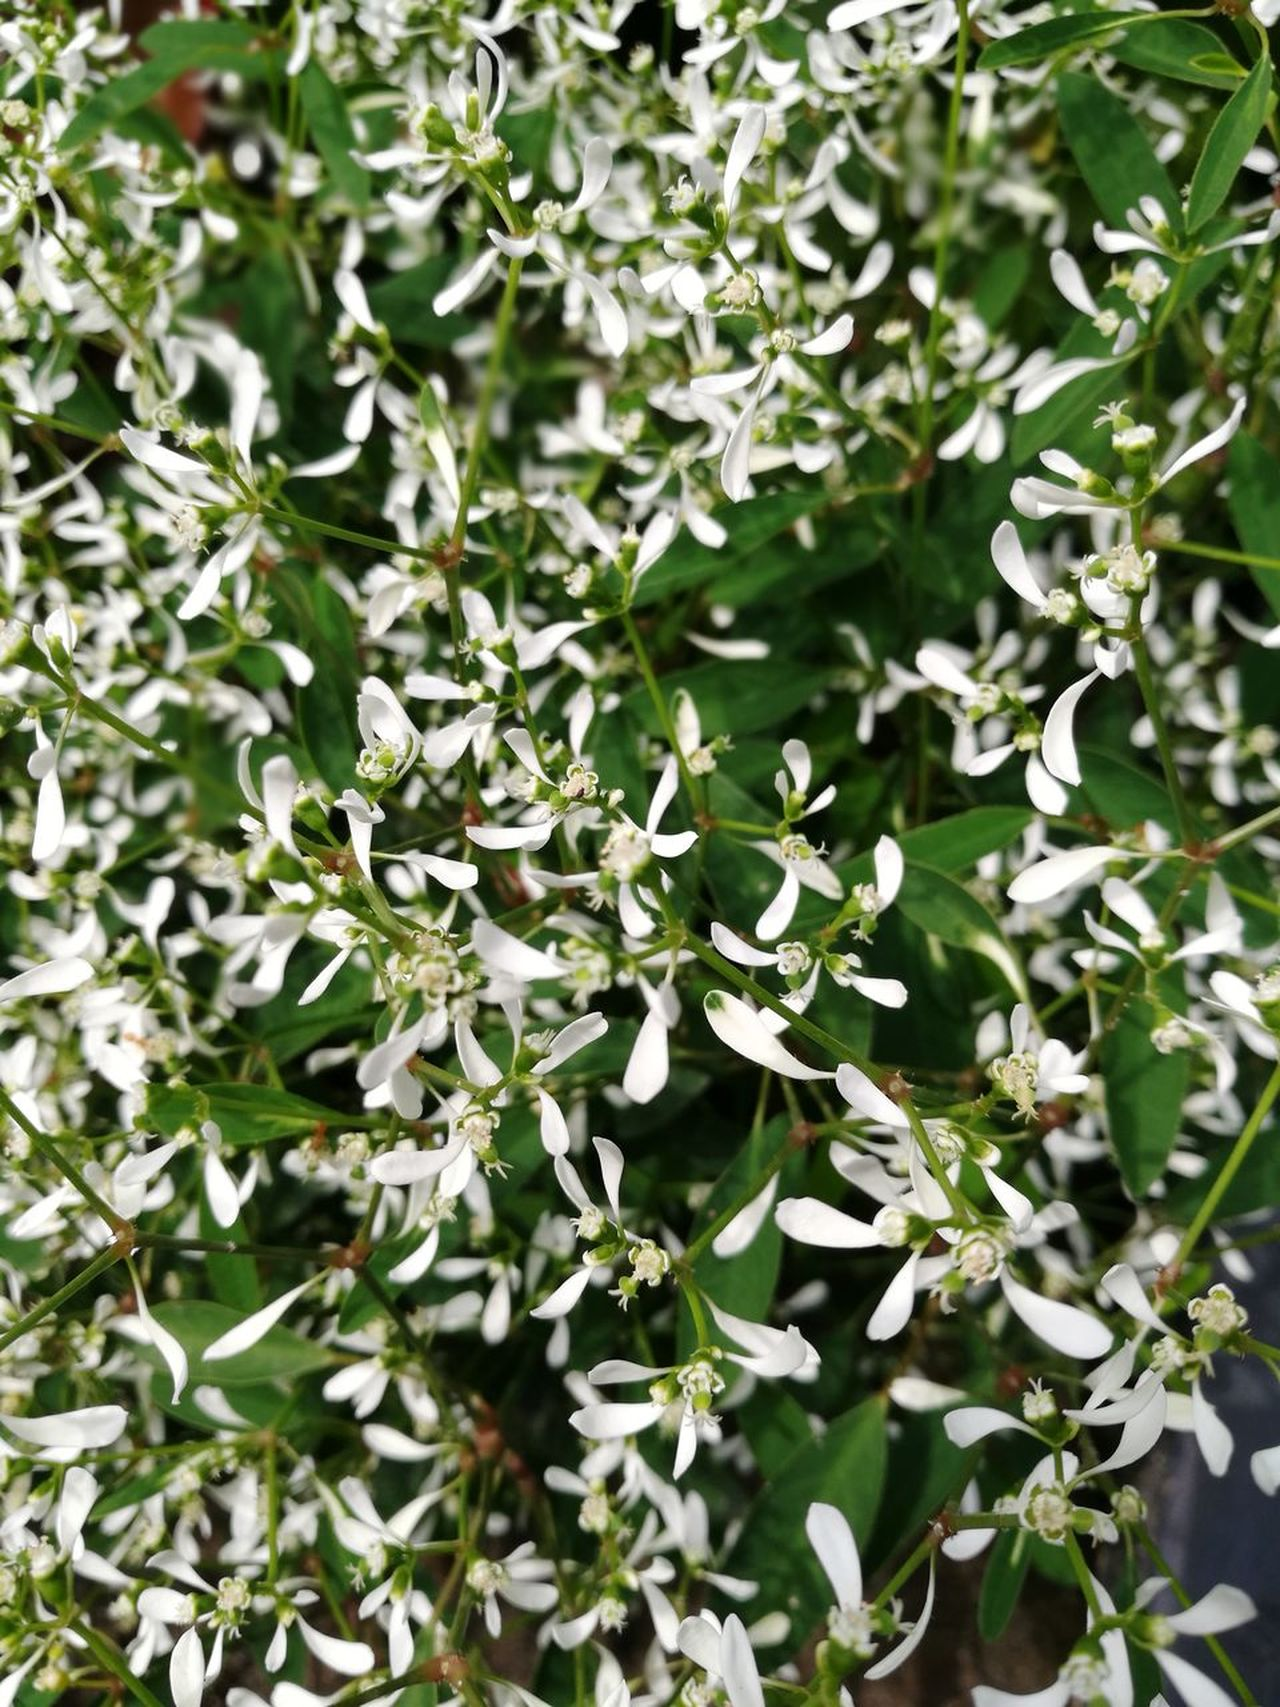 Nature Leaf Growth Plant Outdoors Backgrounds Beauty In Nature Close-up Freshness Flowers White Whiteflowers Tiny Seasonal Planting Garden